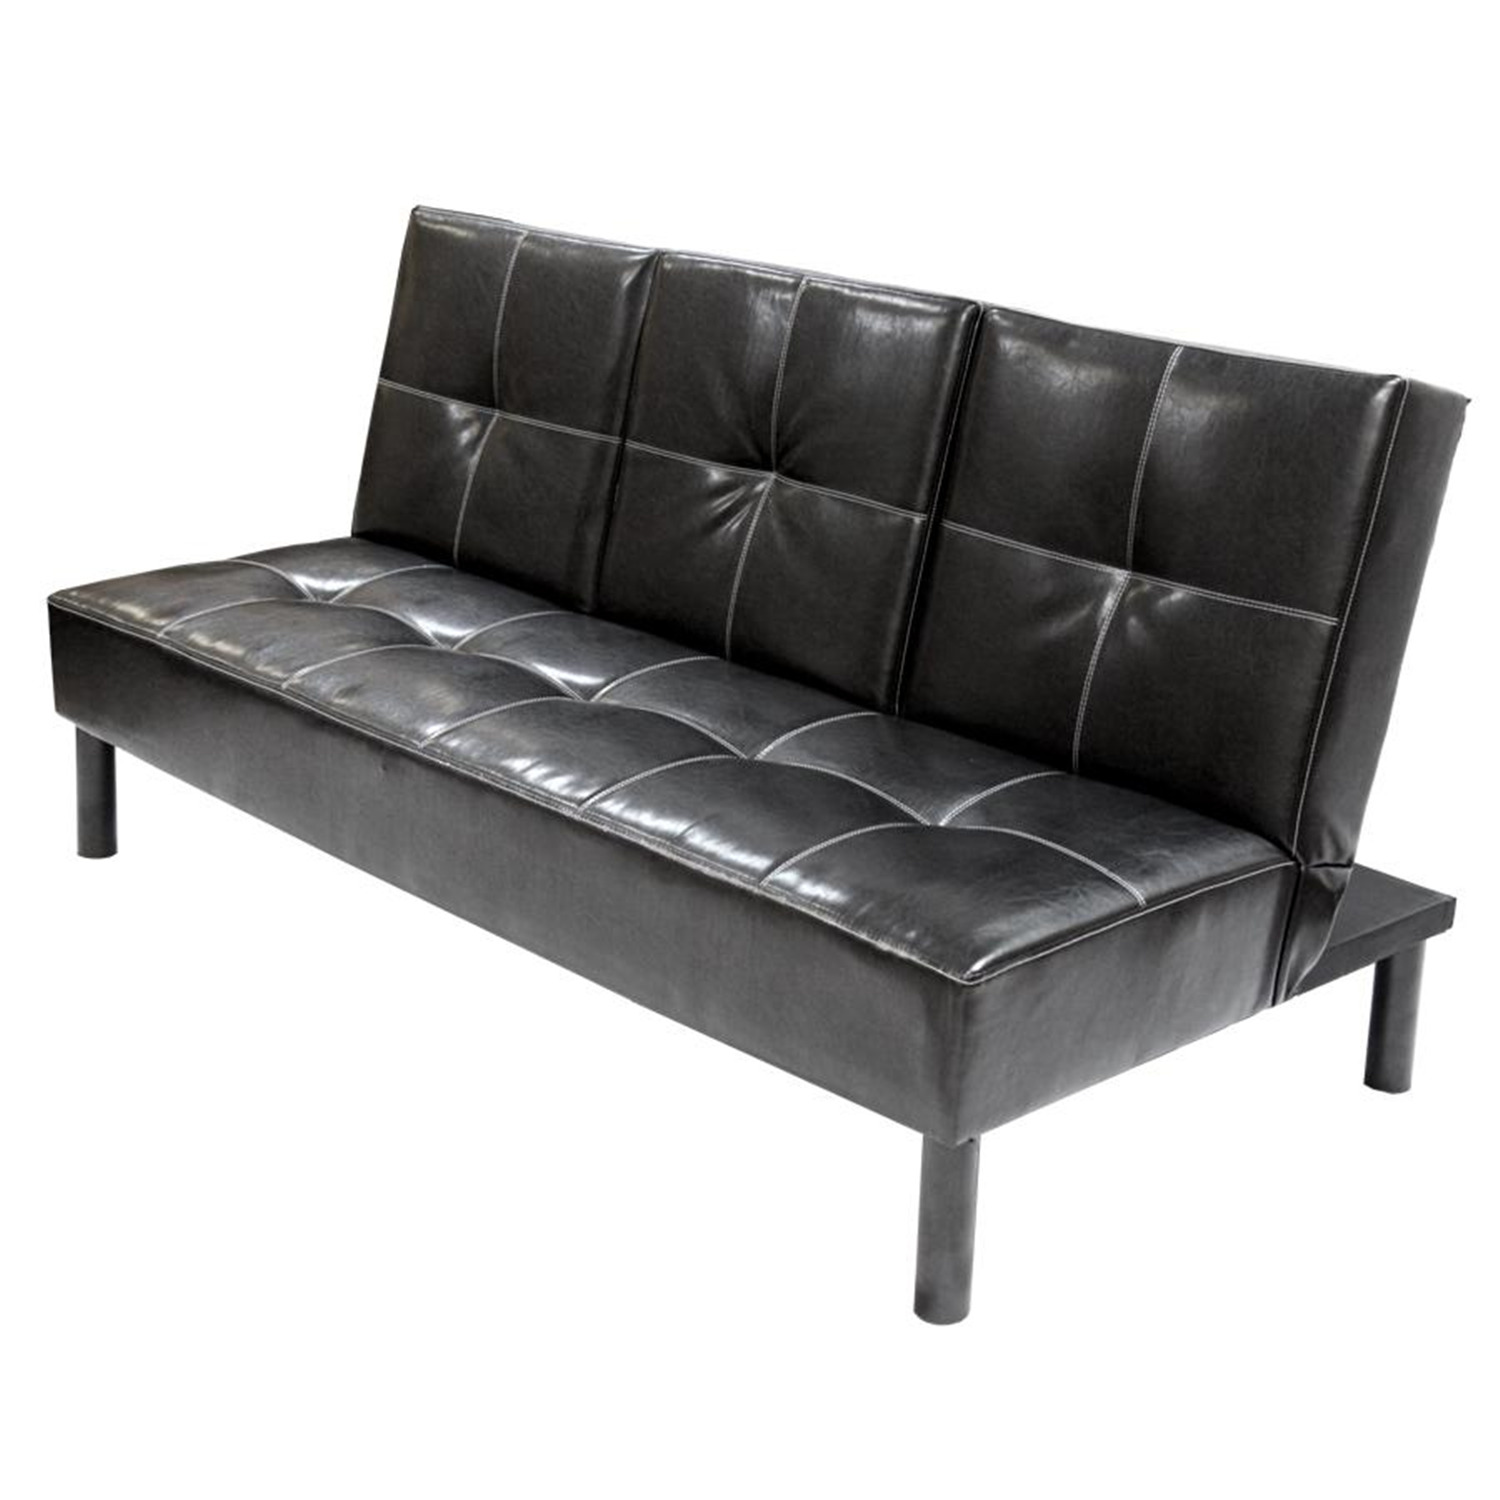 Home Source Clack Sofa w Center Drop Down Tray